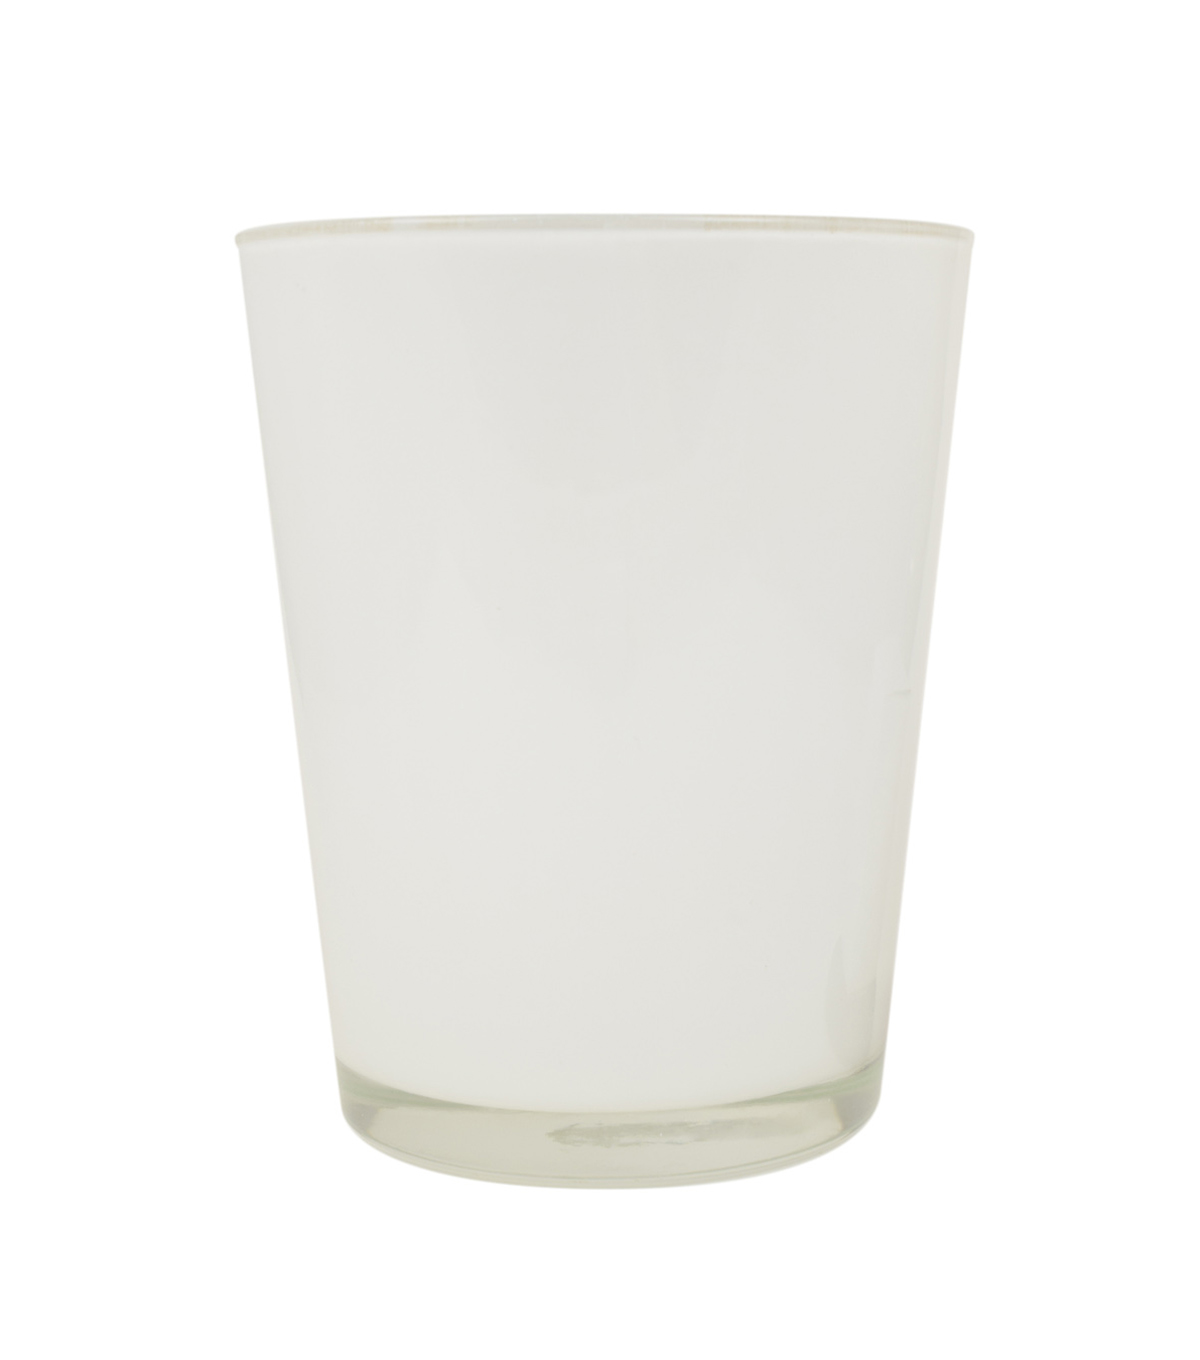 Hudson 43™ Candle & Light Collection 28oz Milk Glass Vase Fill Fresh Linen